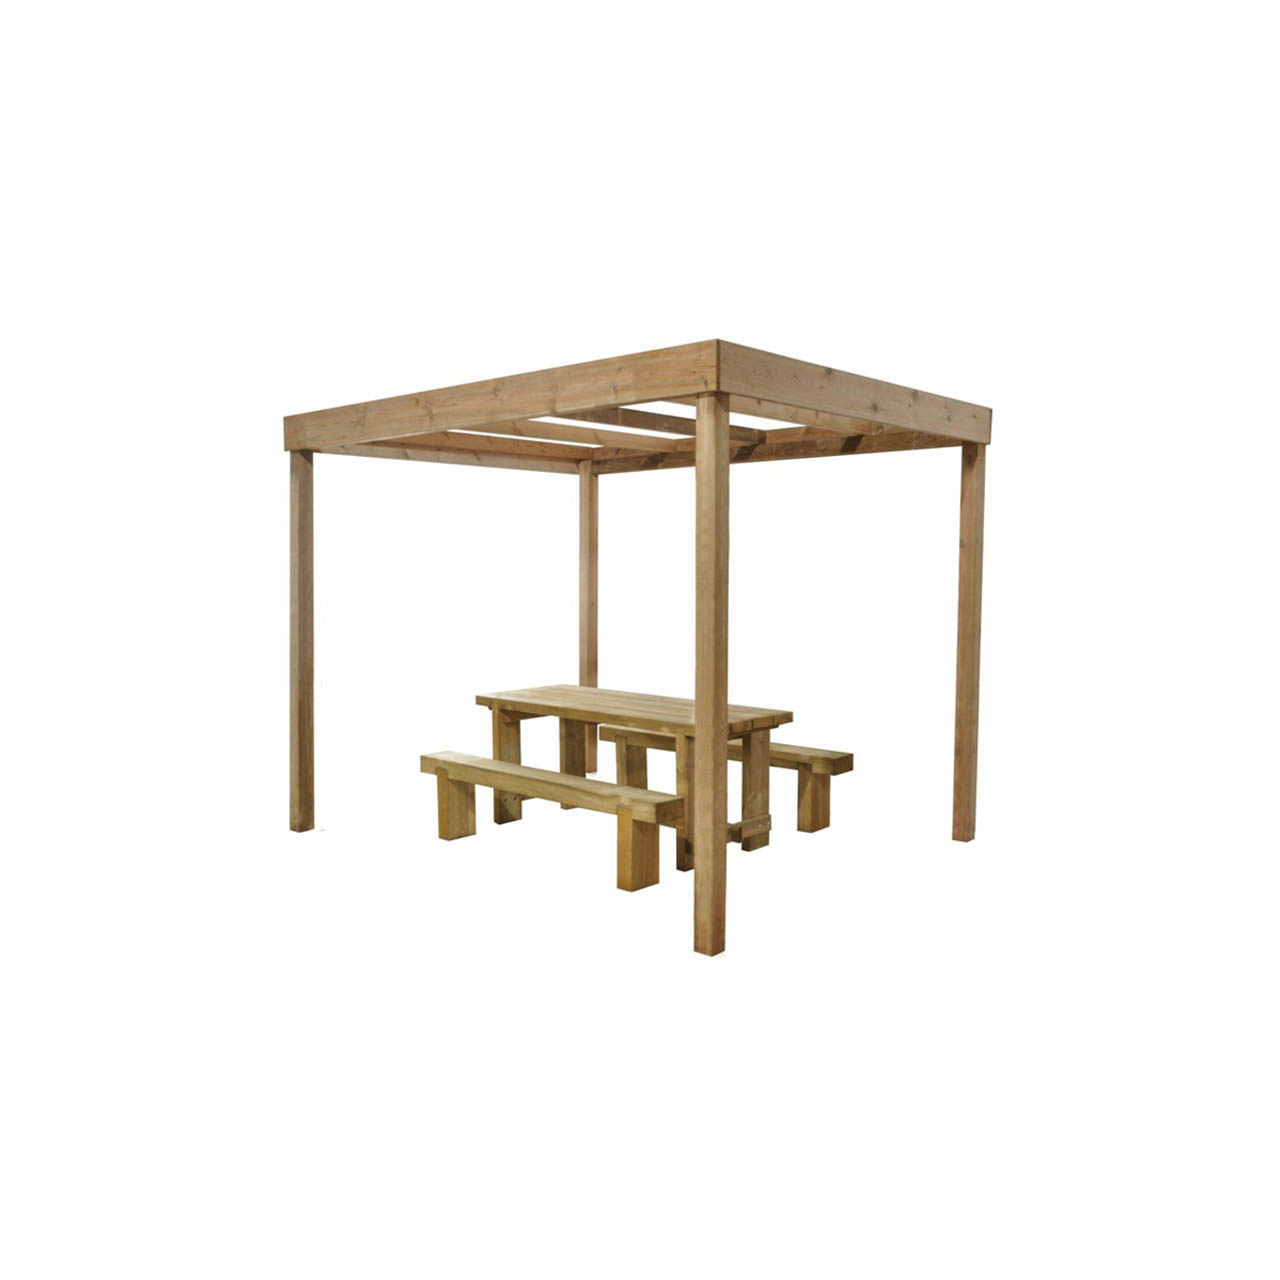 Dining Pergola (Without Panels) 2800mm x 3040mm x 2440mm image 0